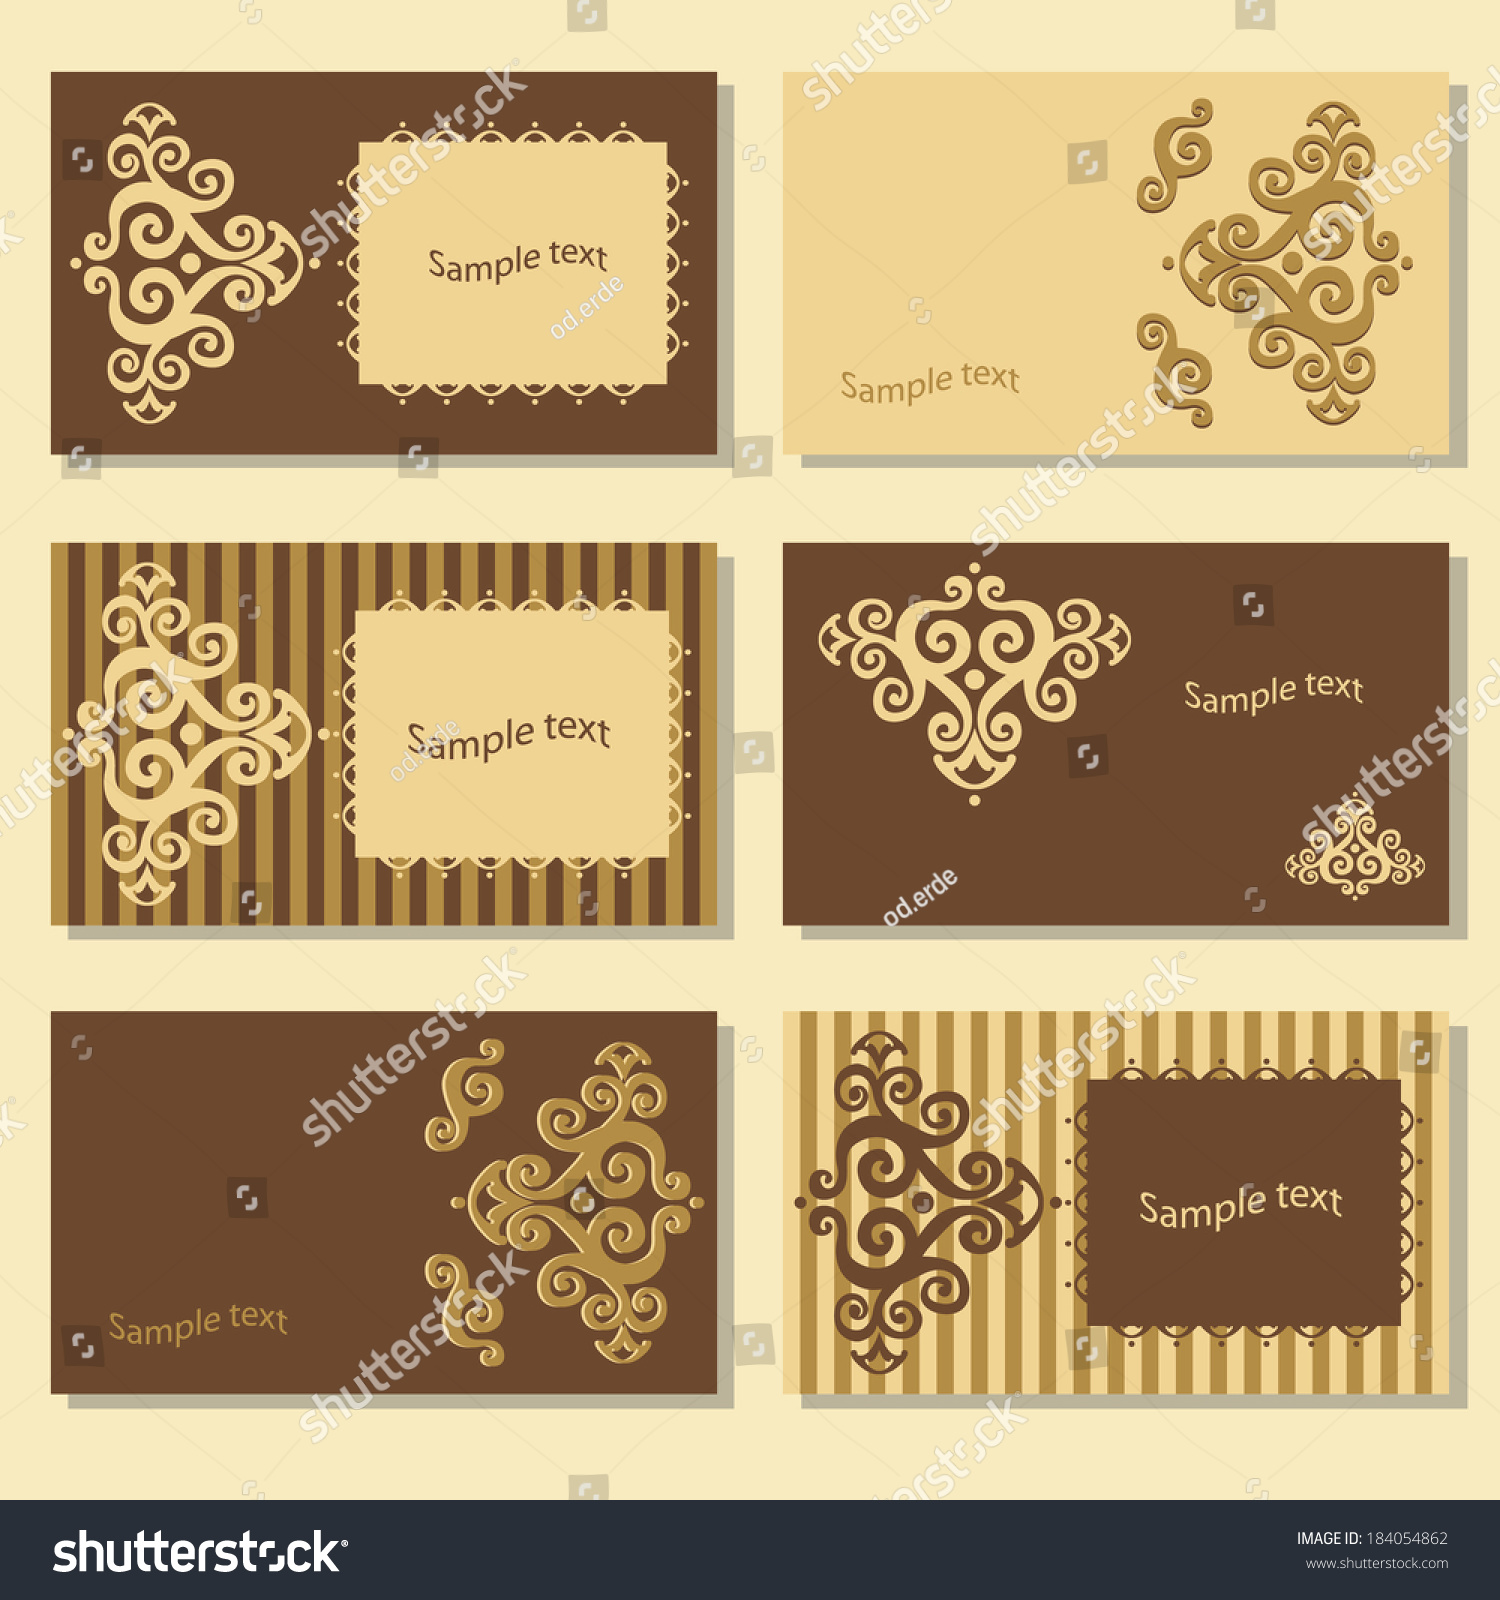 Vintage Business Cards Calling Card Vector Stock Vector HD (Royalty ...